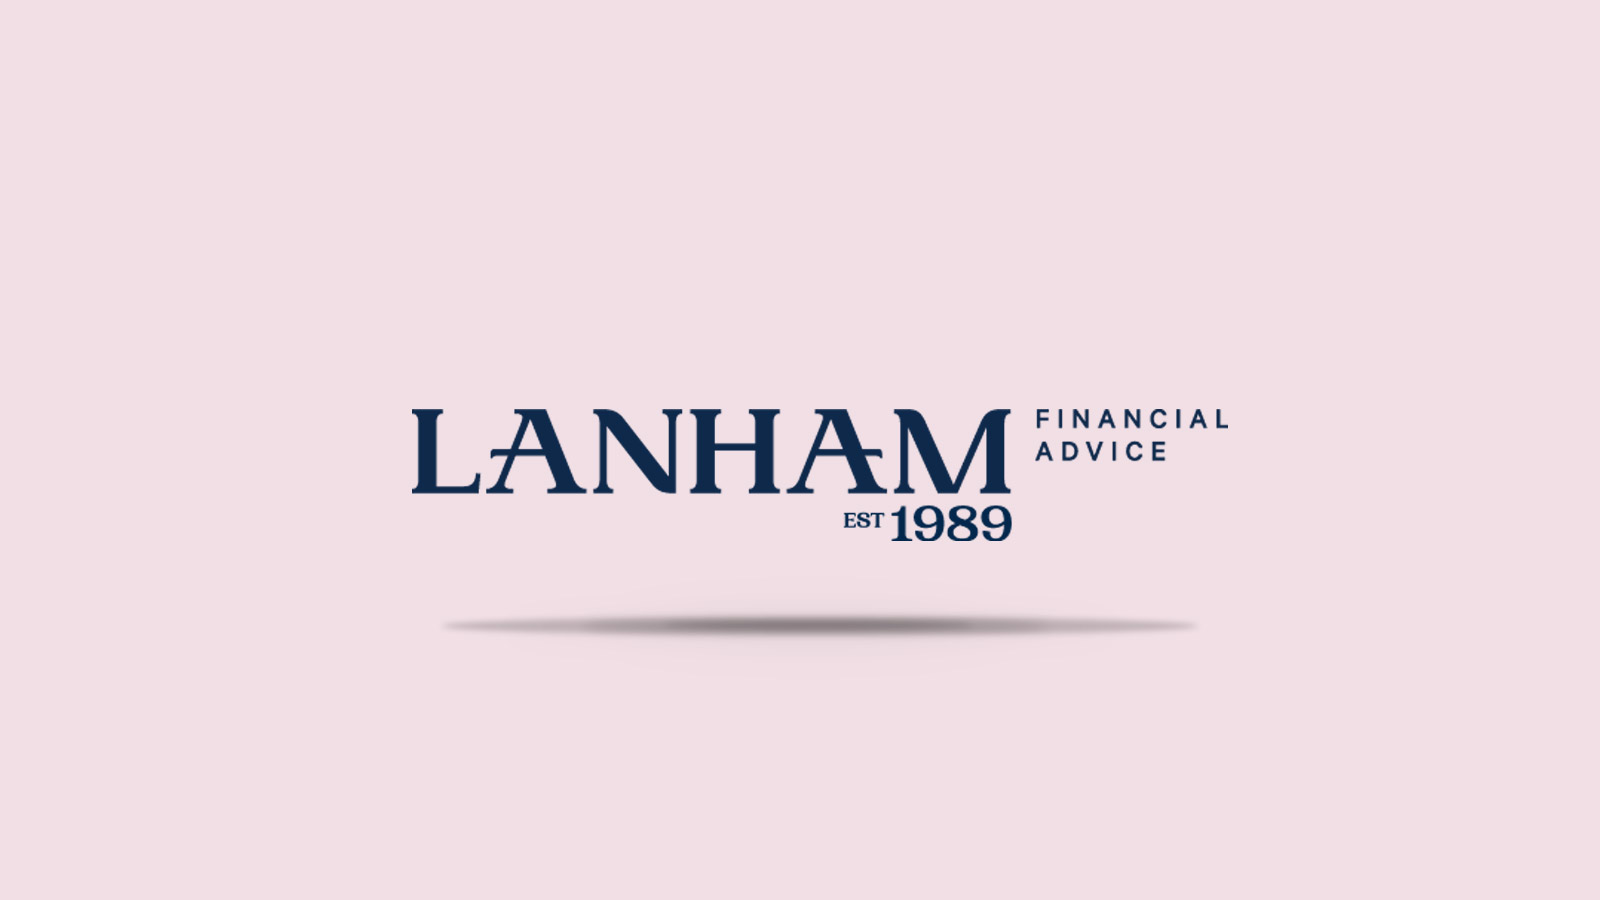 Lanham Financial